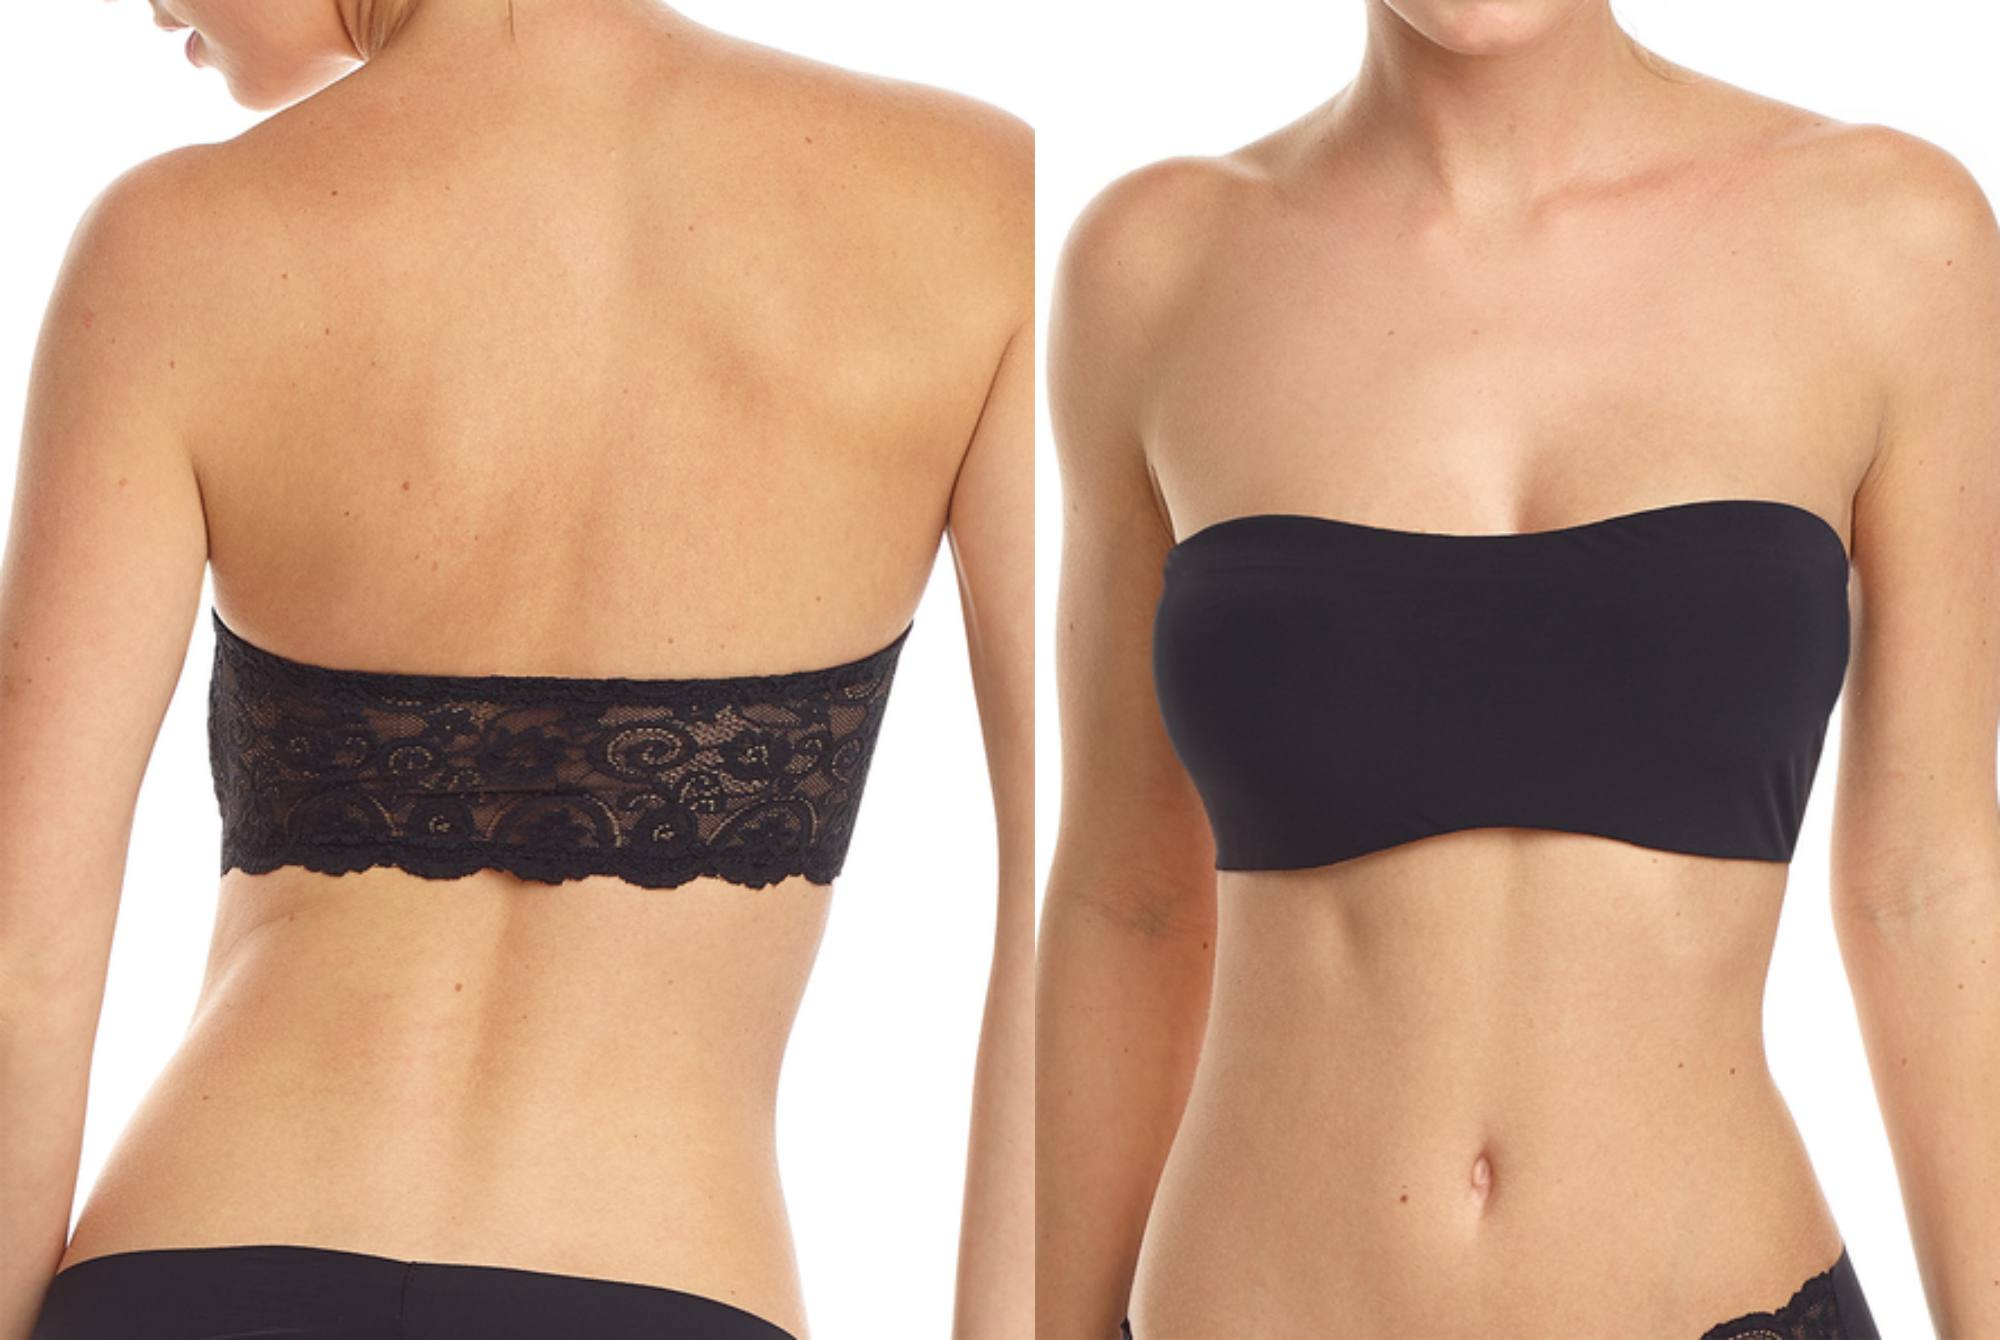 c21e769521f The Best Strapless Bras for Small Busts